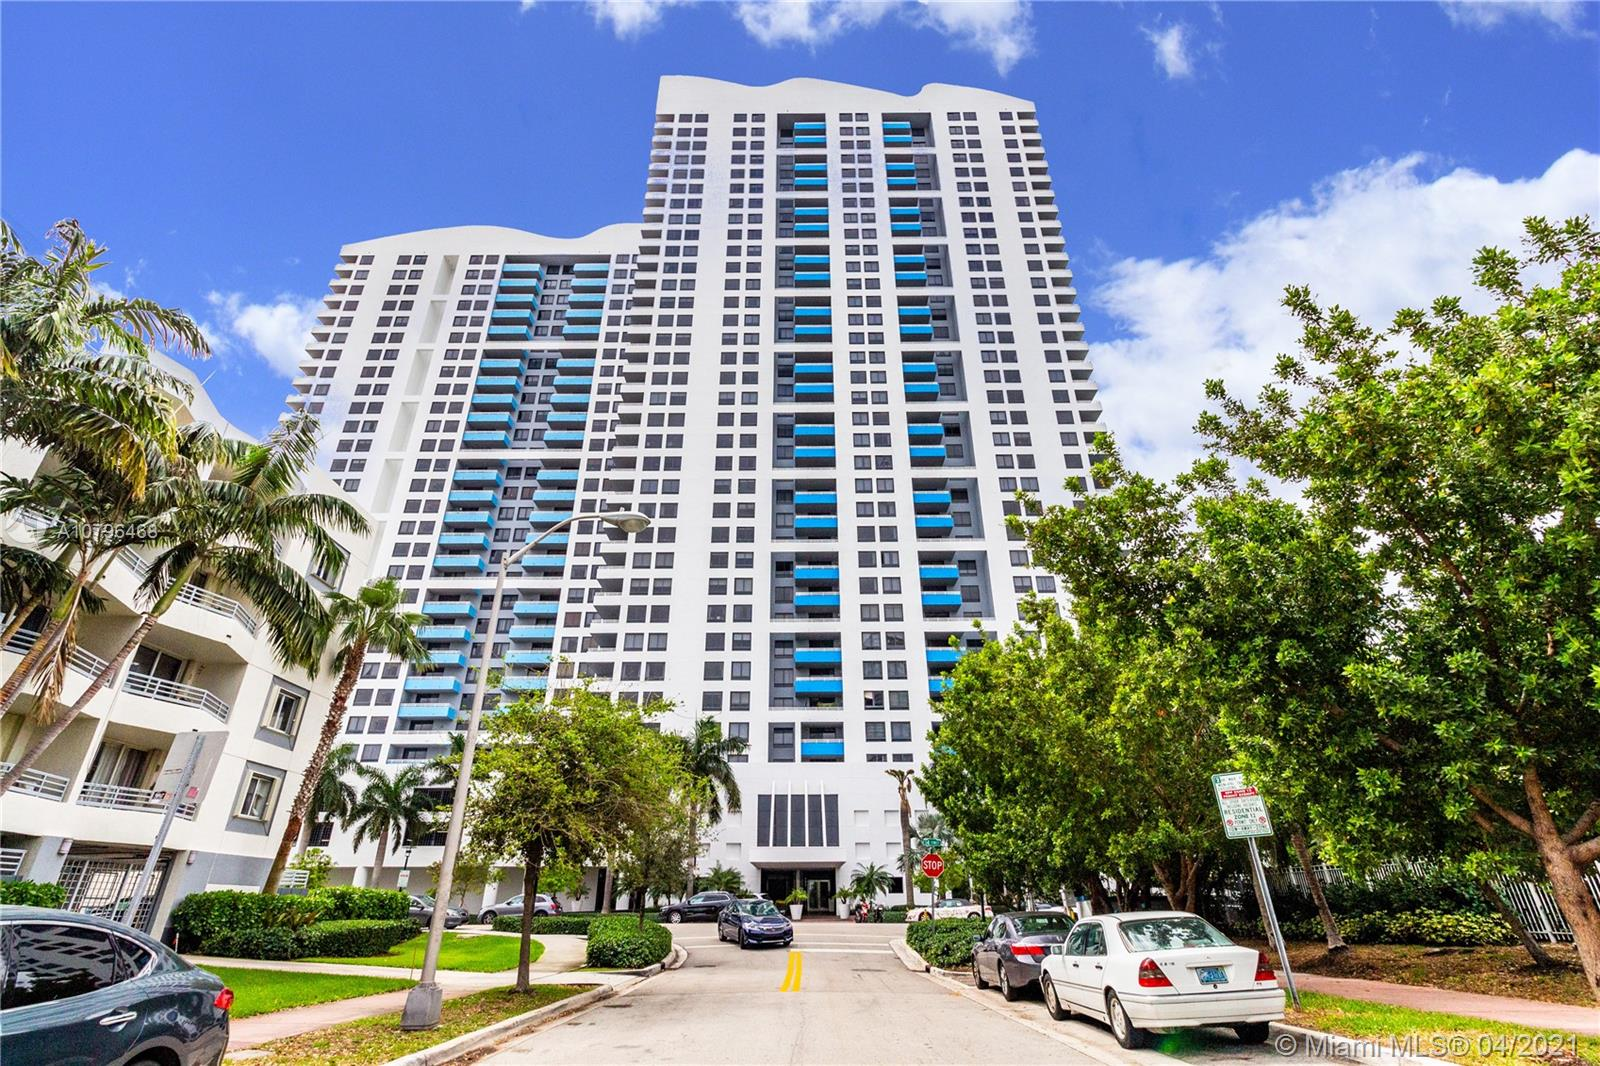 Waverly South Beach. Two bedroom, split plan, high floor unit with large balcony, gorgeous city and partial bay views, beautiful marble floors throughout, full size washer and dryer. Best waterfront location,3 blocks from exciting Lincoln Road,easy walk to beach. Full service luxury building, heated lagoon style pool, Jacuzzi, sand volley, 24/7 front desk, security, valet, gym, BBQ, tennis. Premium cable, high speed Internet included in rent. One space and valet. Unit is rented through Dec 2021.